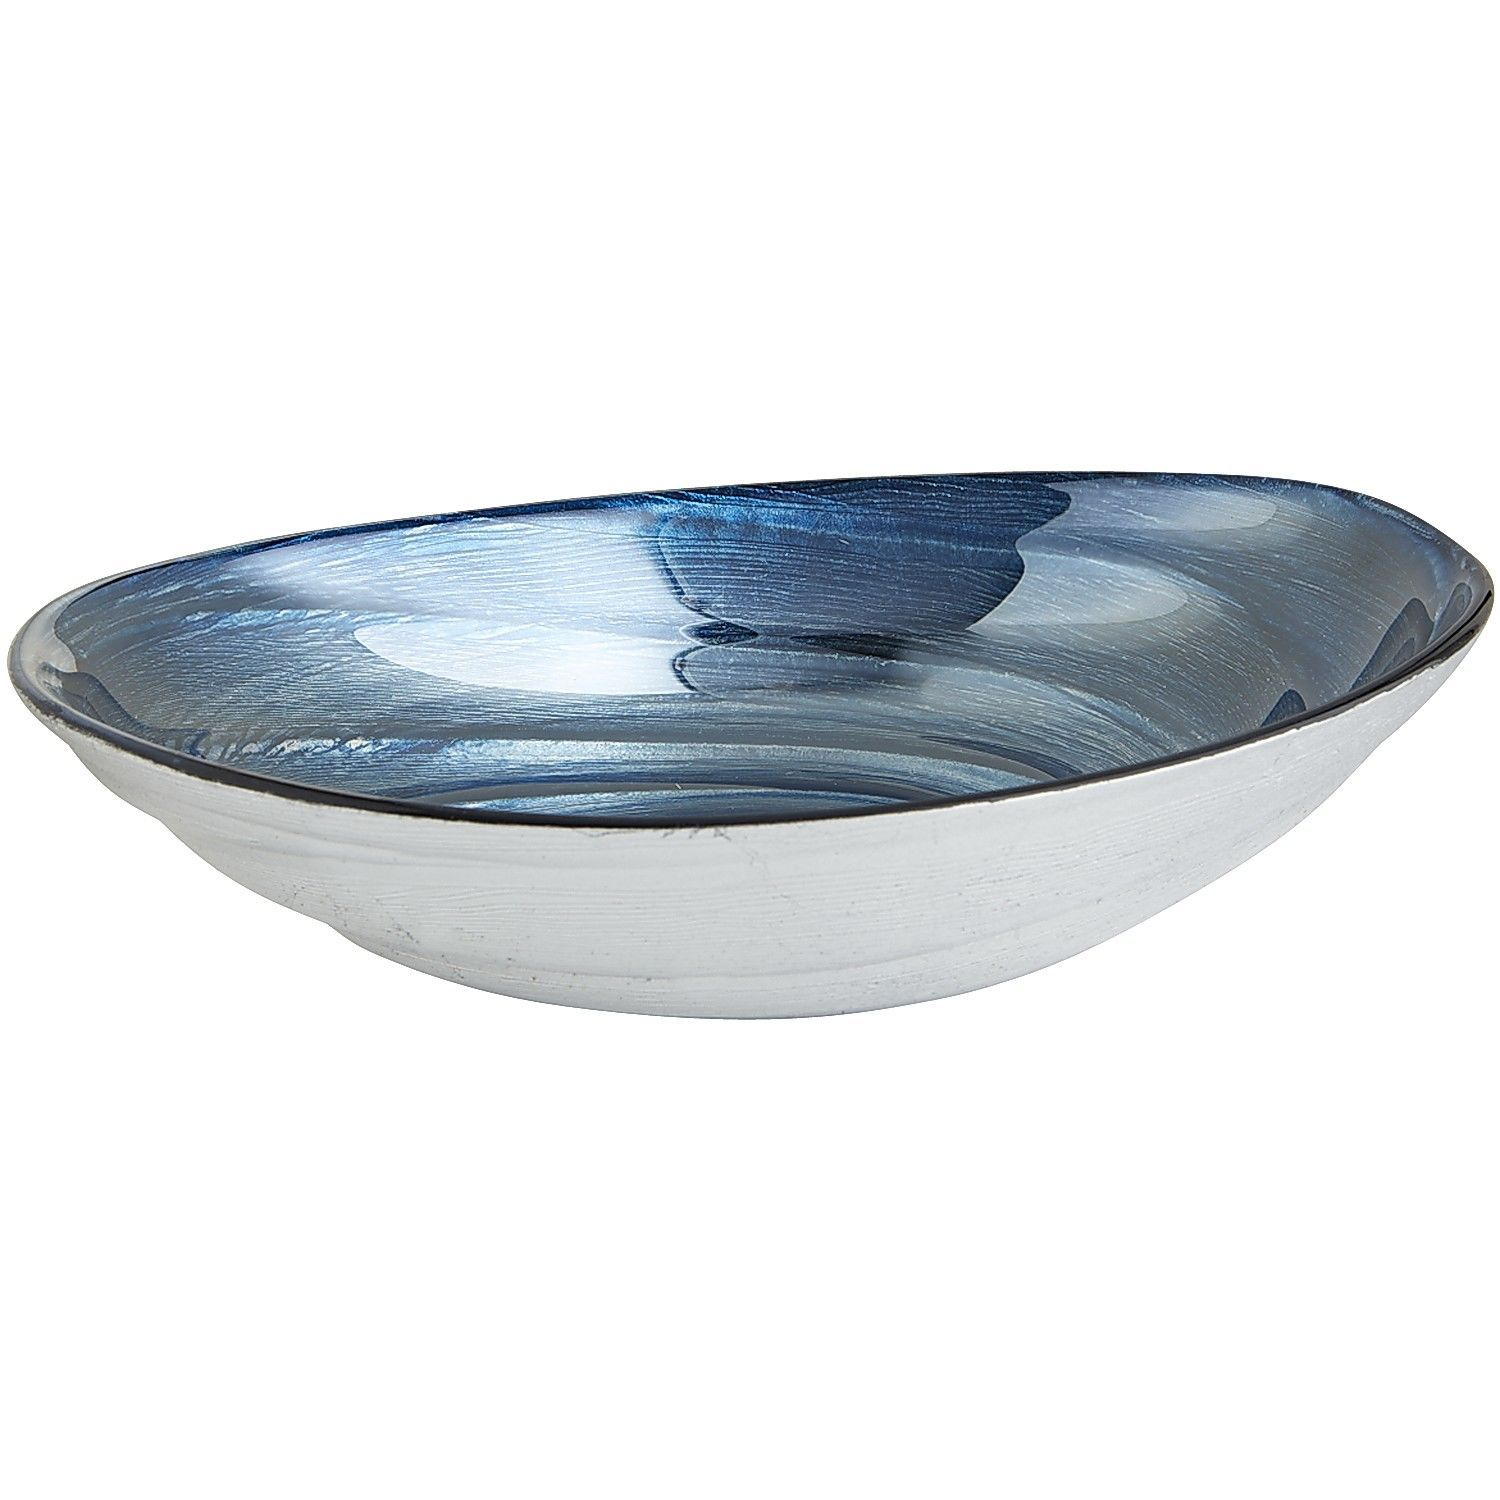 Oval Swirled Bowl Blue & Silver Pier 1 Imports